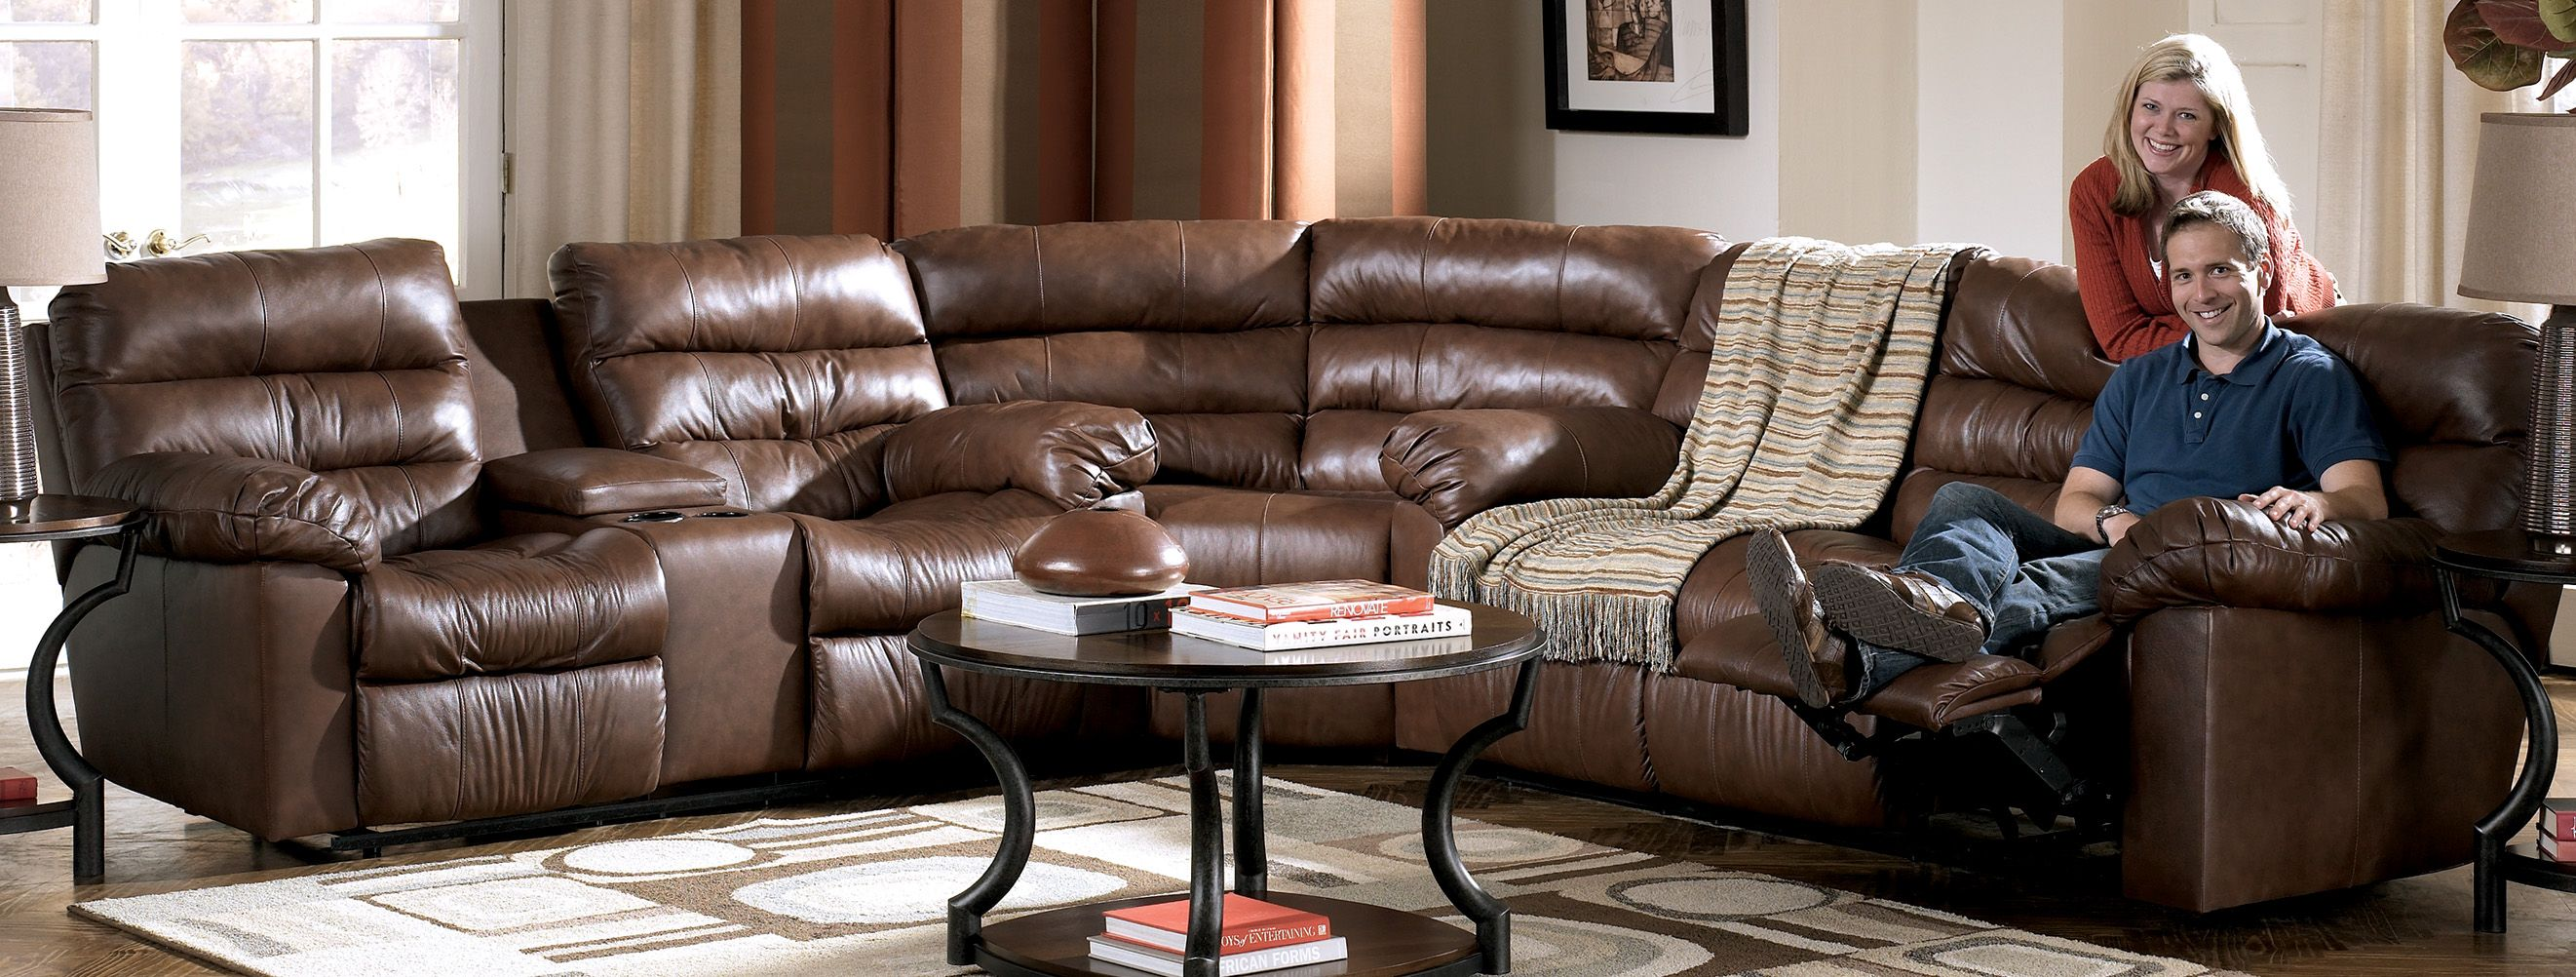 Reclining Leather Sectional Sofa with 4 Recliners and a Console